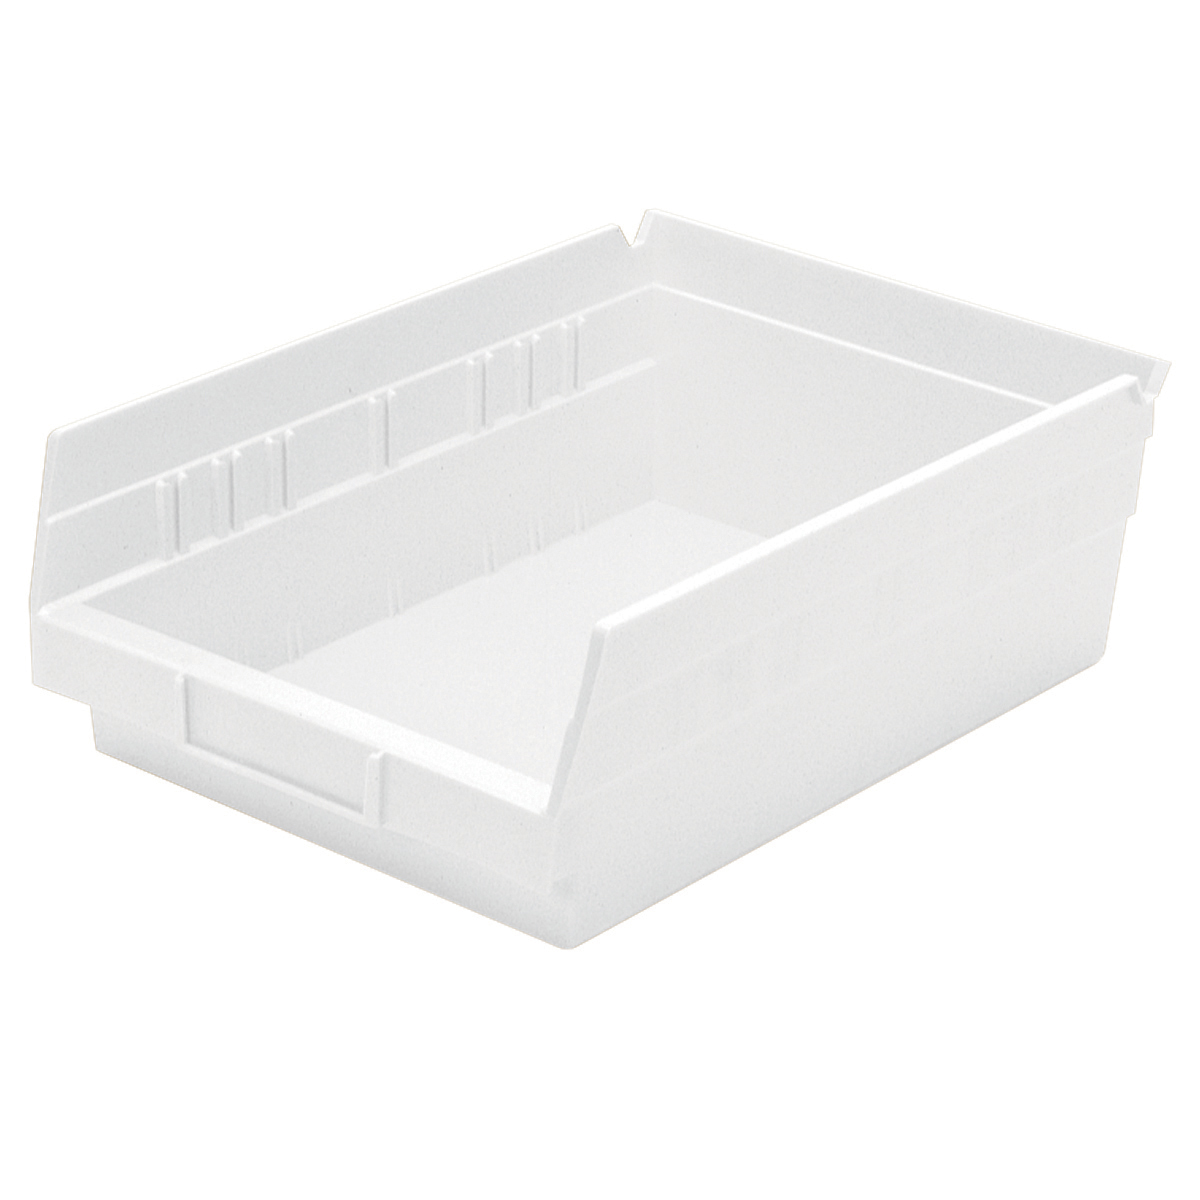 Shelf Bin 11-5/8 x 8-3/8 x 4, White (30150WHITE).  This item sold in carton quantities of 12.